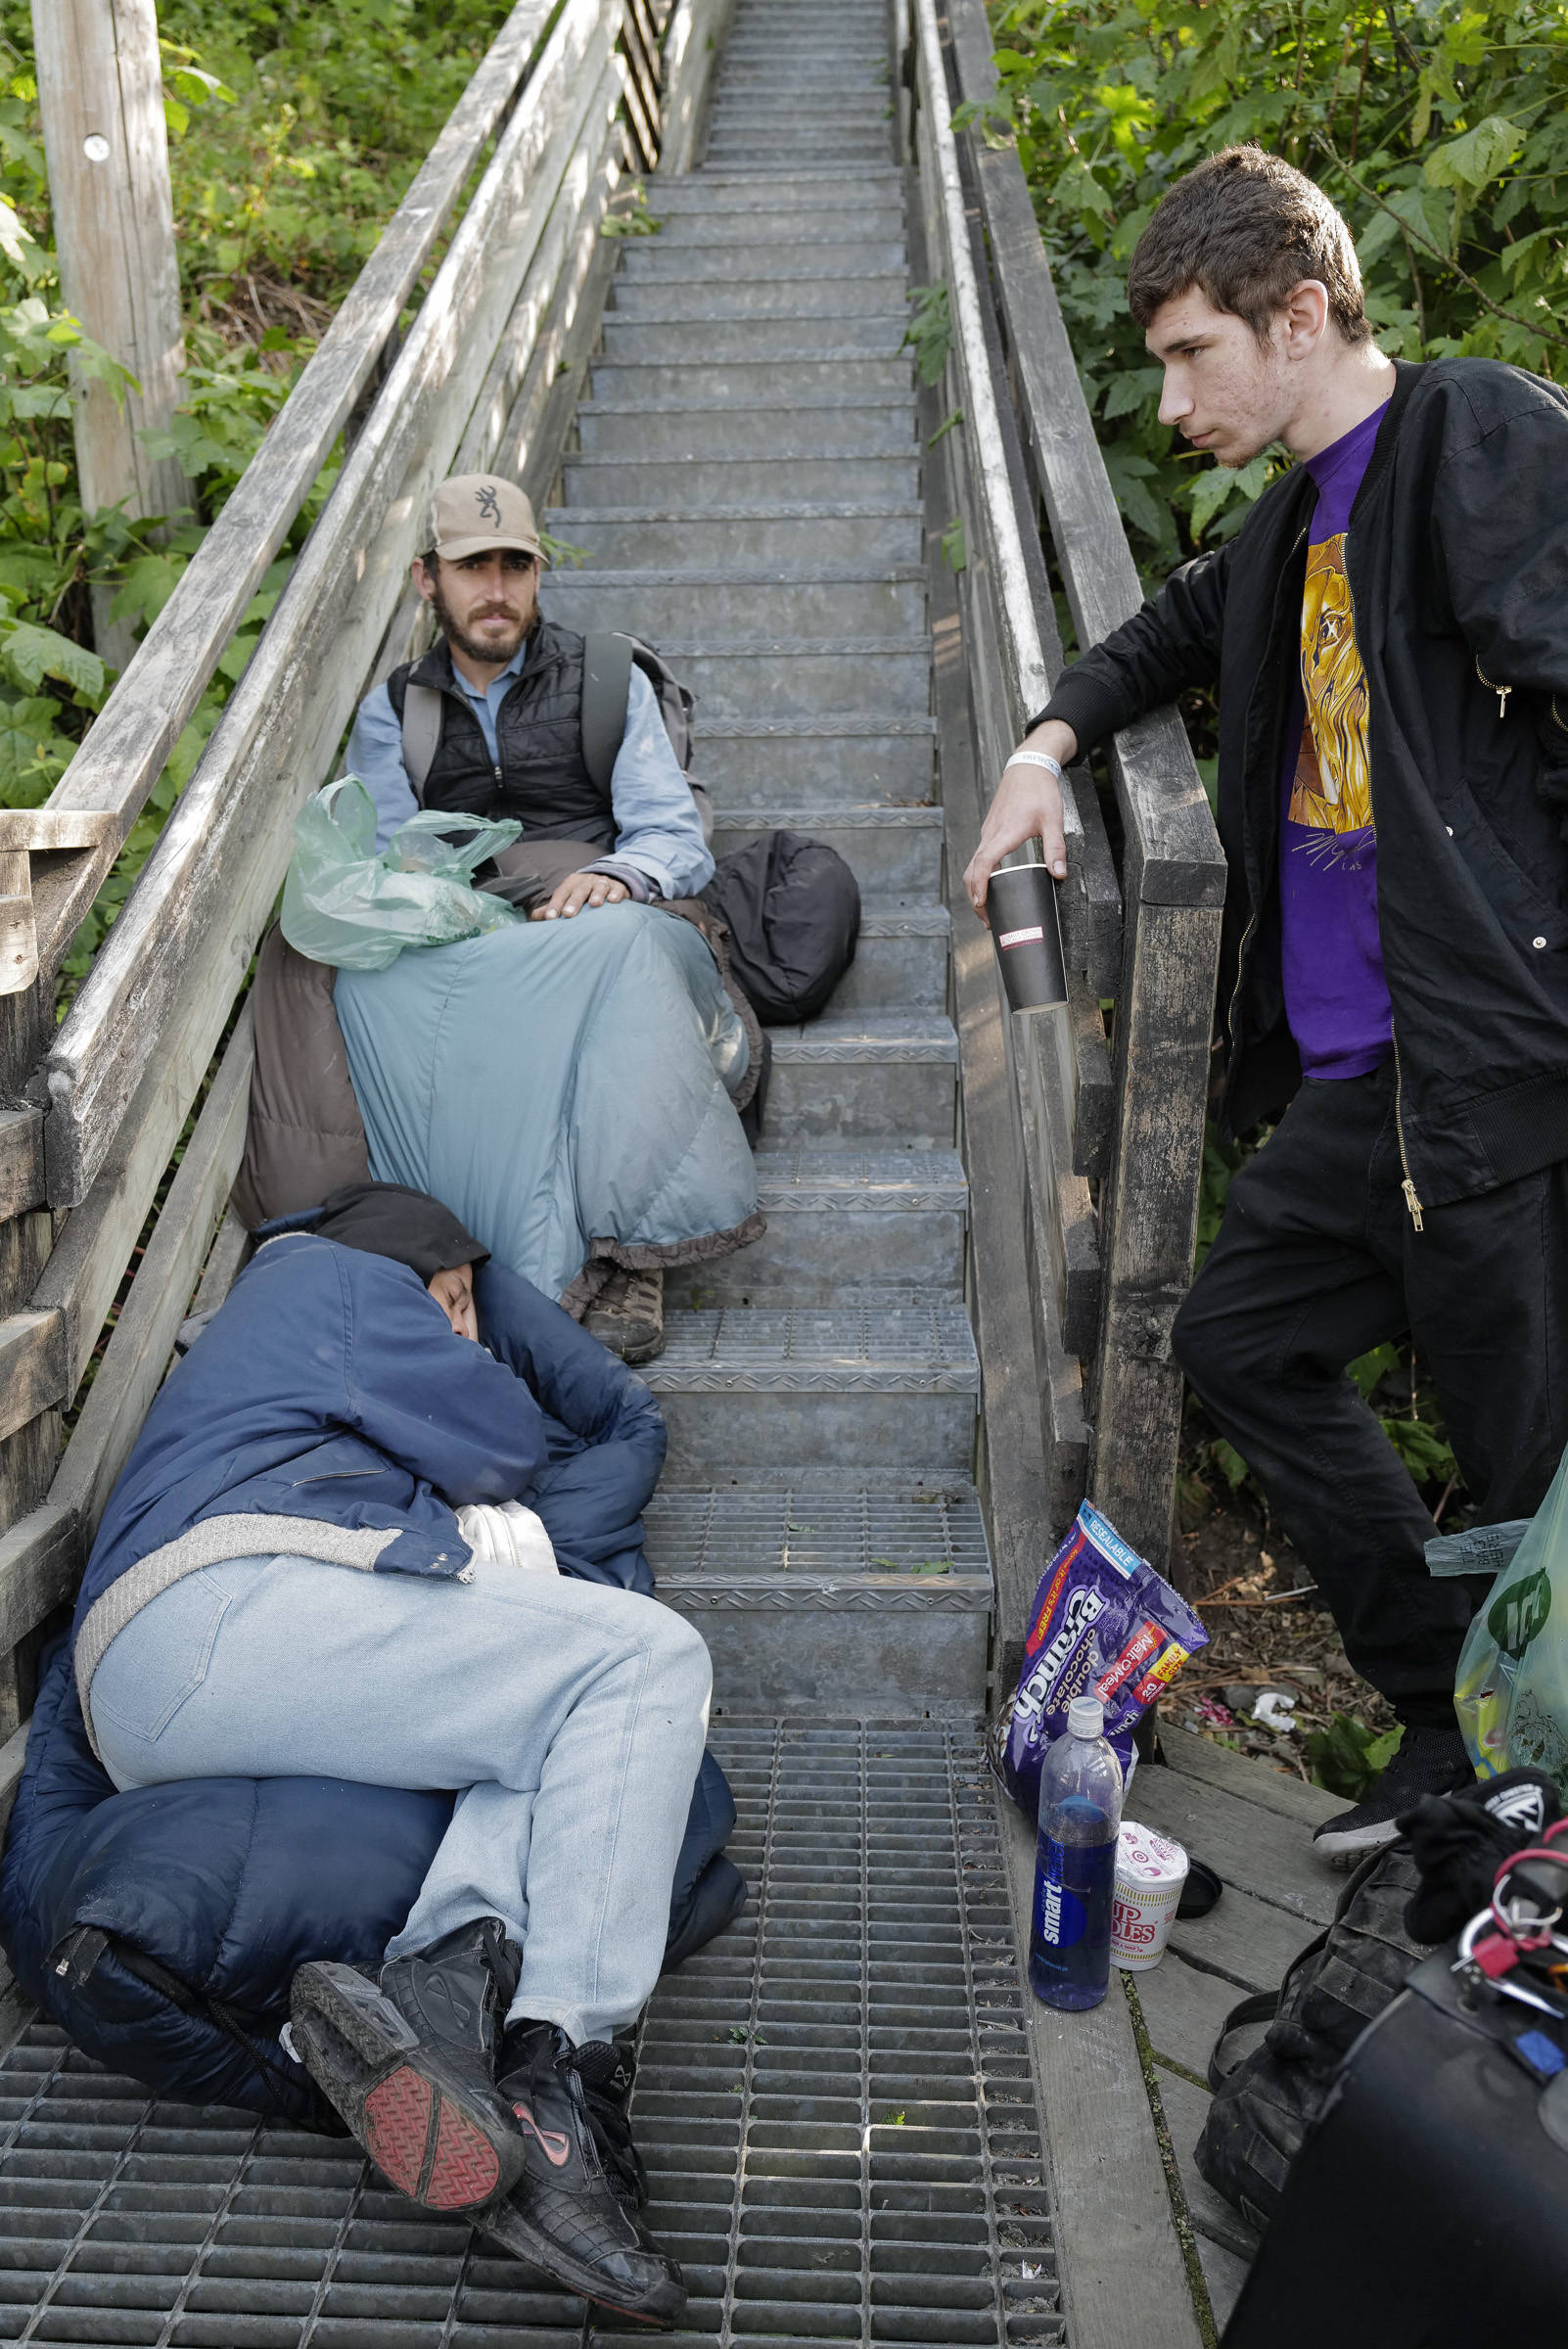 Homeless people spend their time on the Decker Way stairs after the Glory Hall's closure on Tuesday, Aug. 13, 2019. (Michael Penn | Juneau Empire)